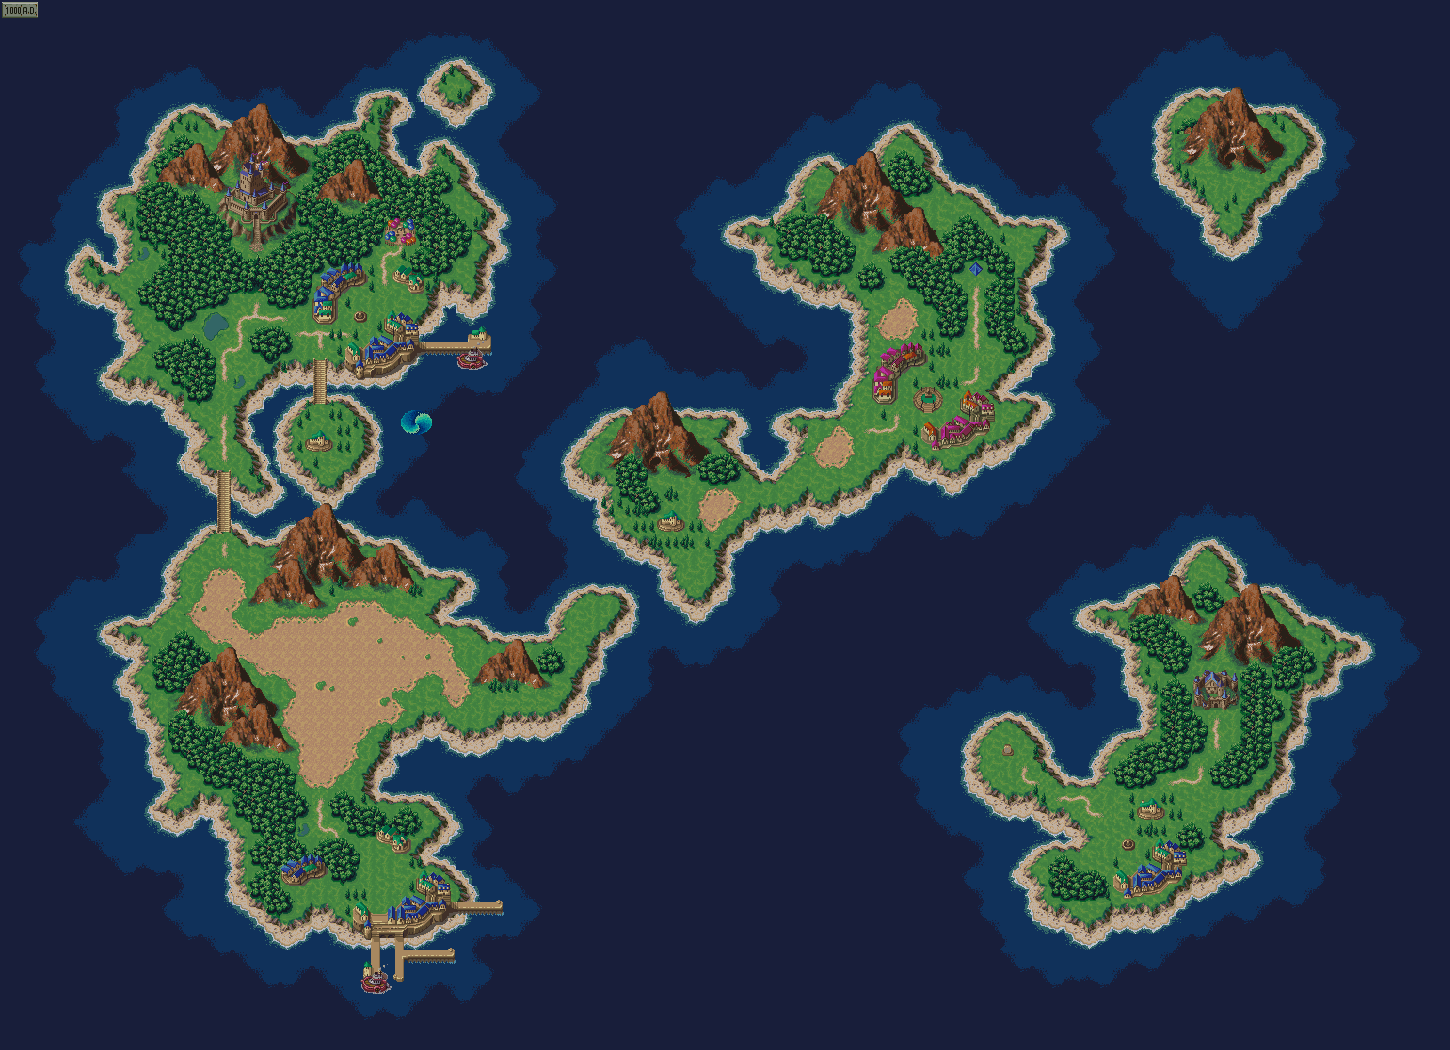 Image chrono trigger world map 1000 adg nintendo fandom chrono trigger world map 1000 adg edit gumiabroncs Images